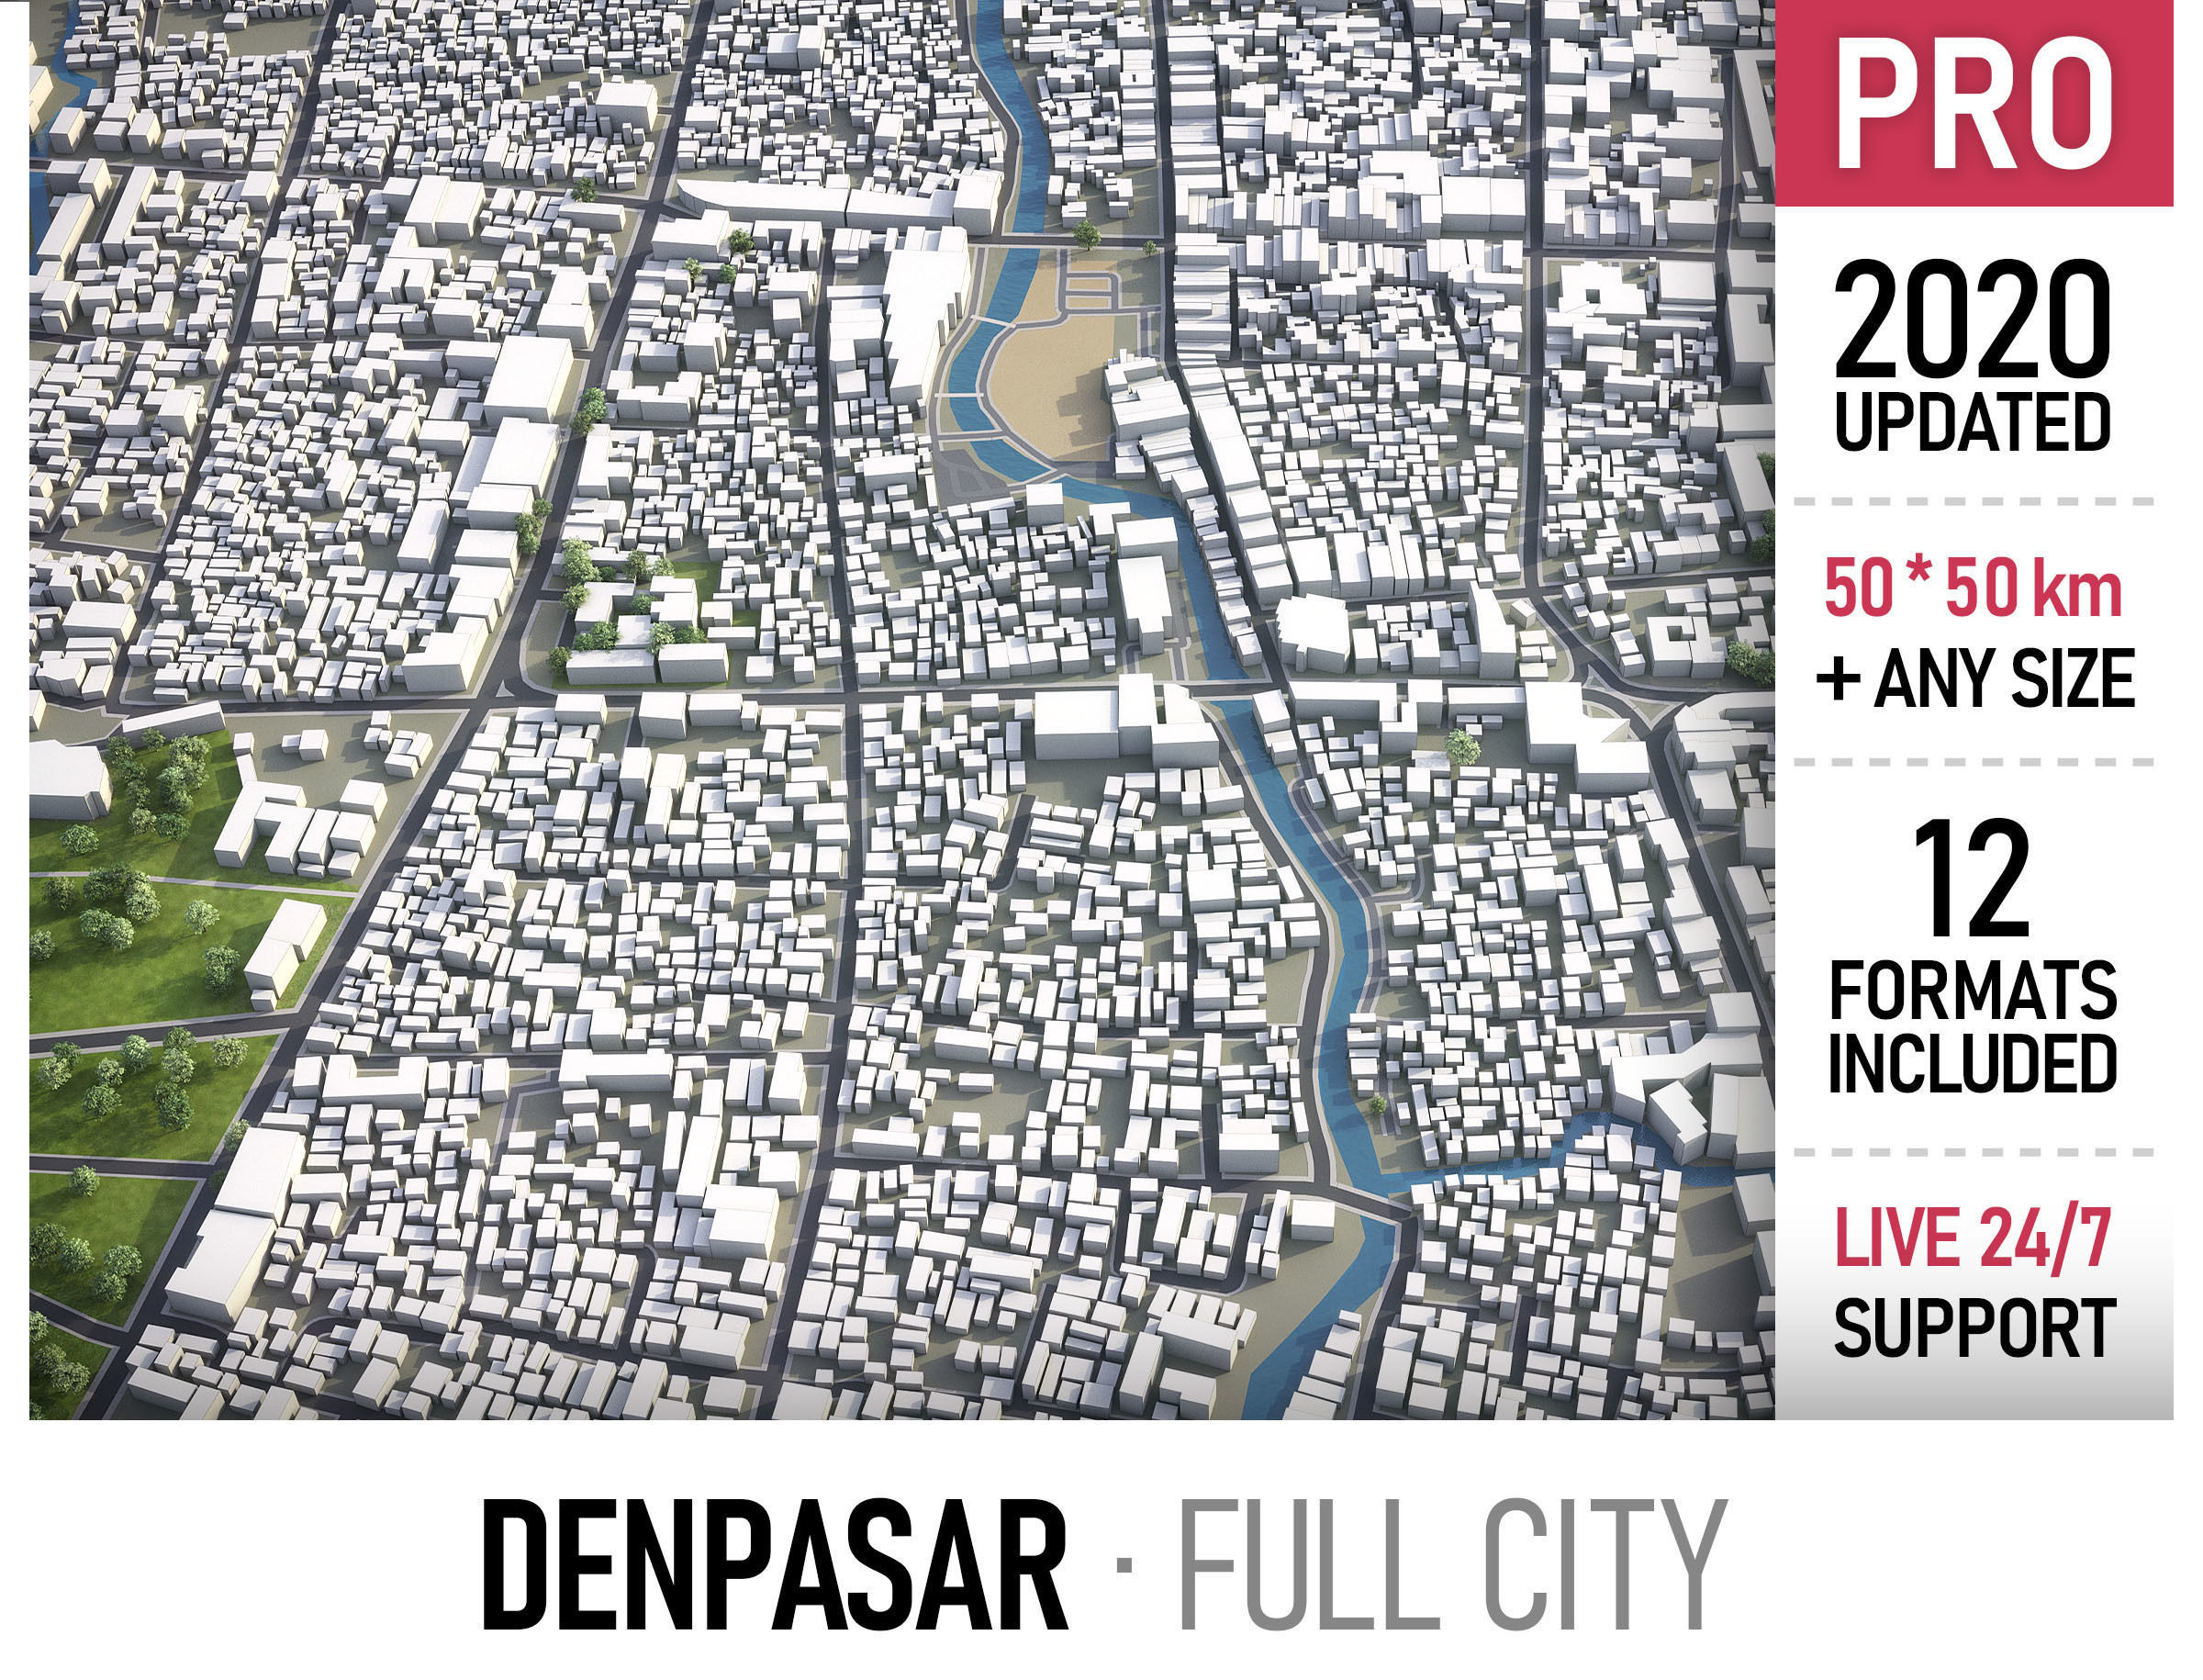 Denpasar - city and surroundings